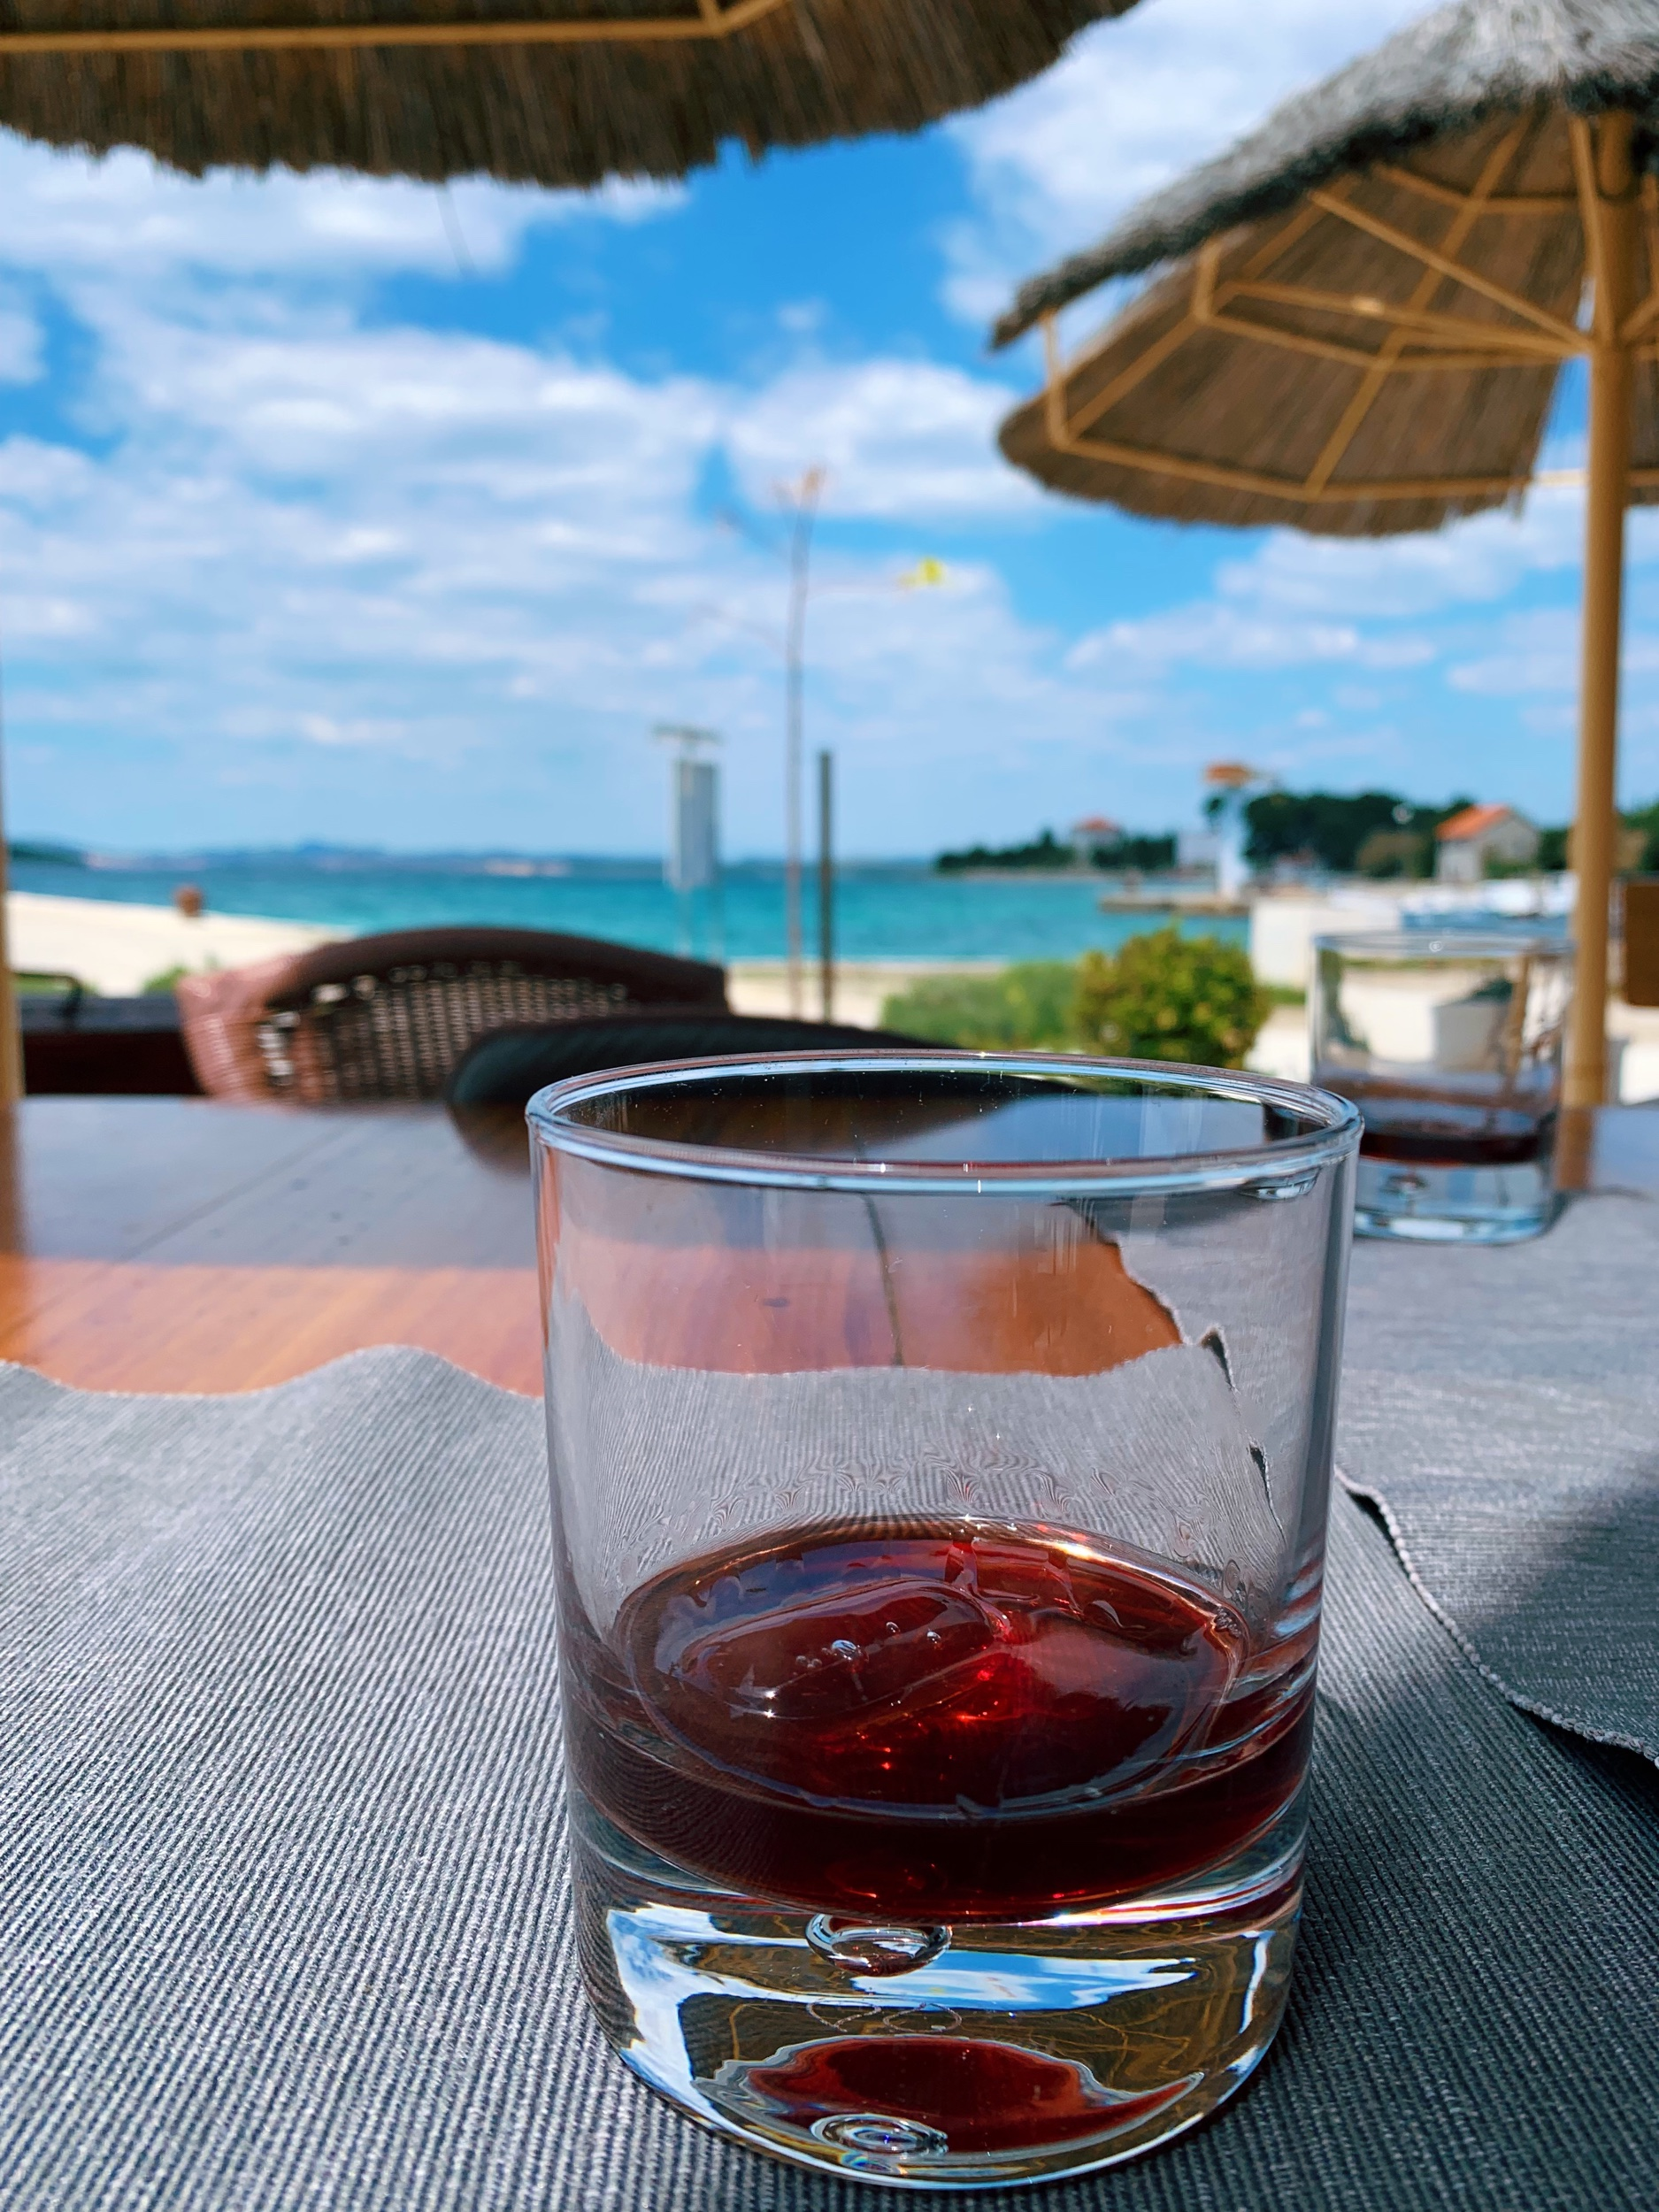 Cherry brandy, our drink of choice on this trip.